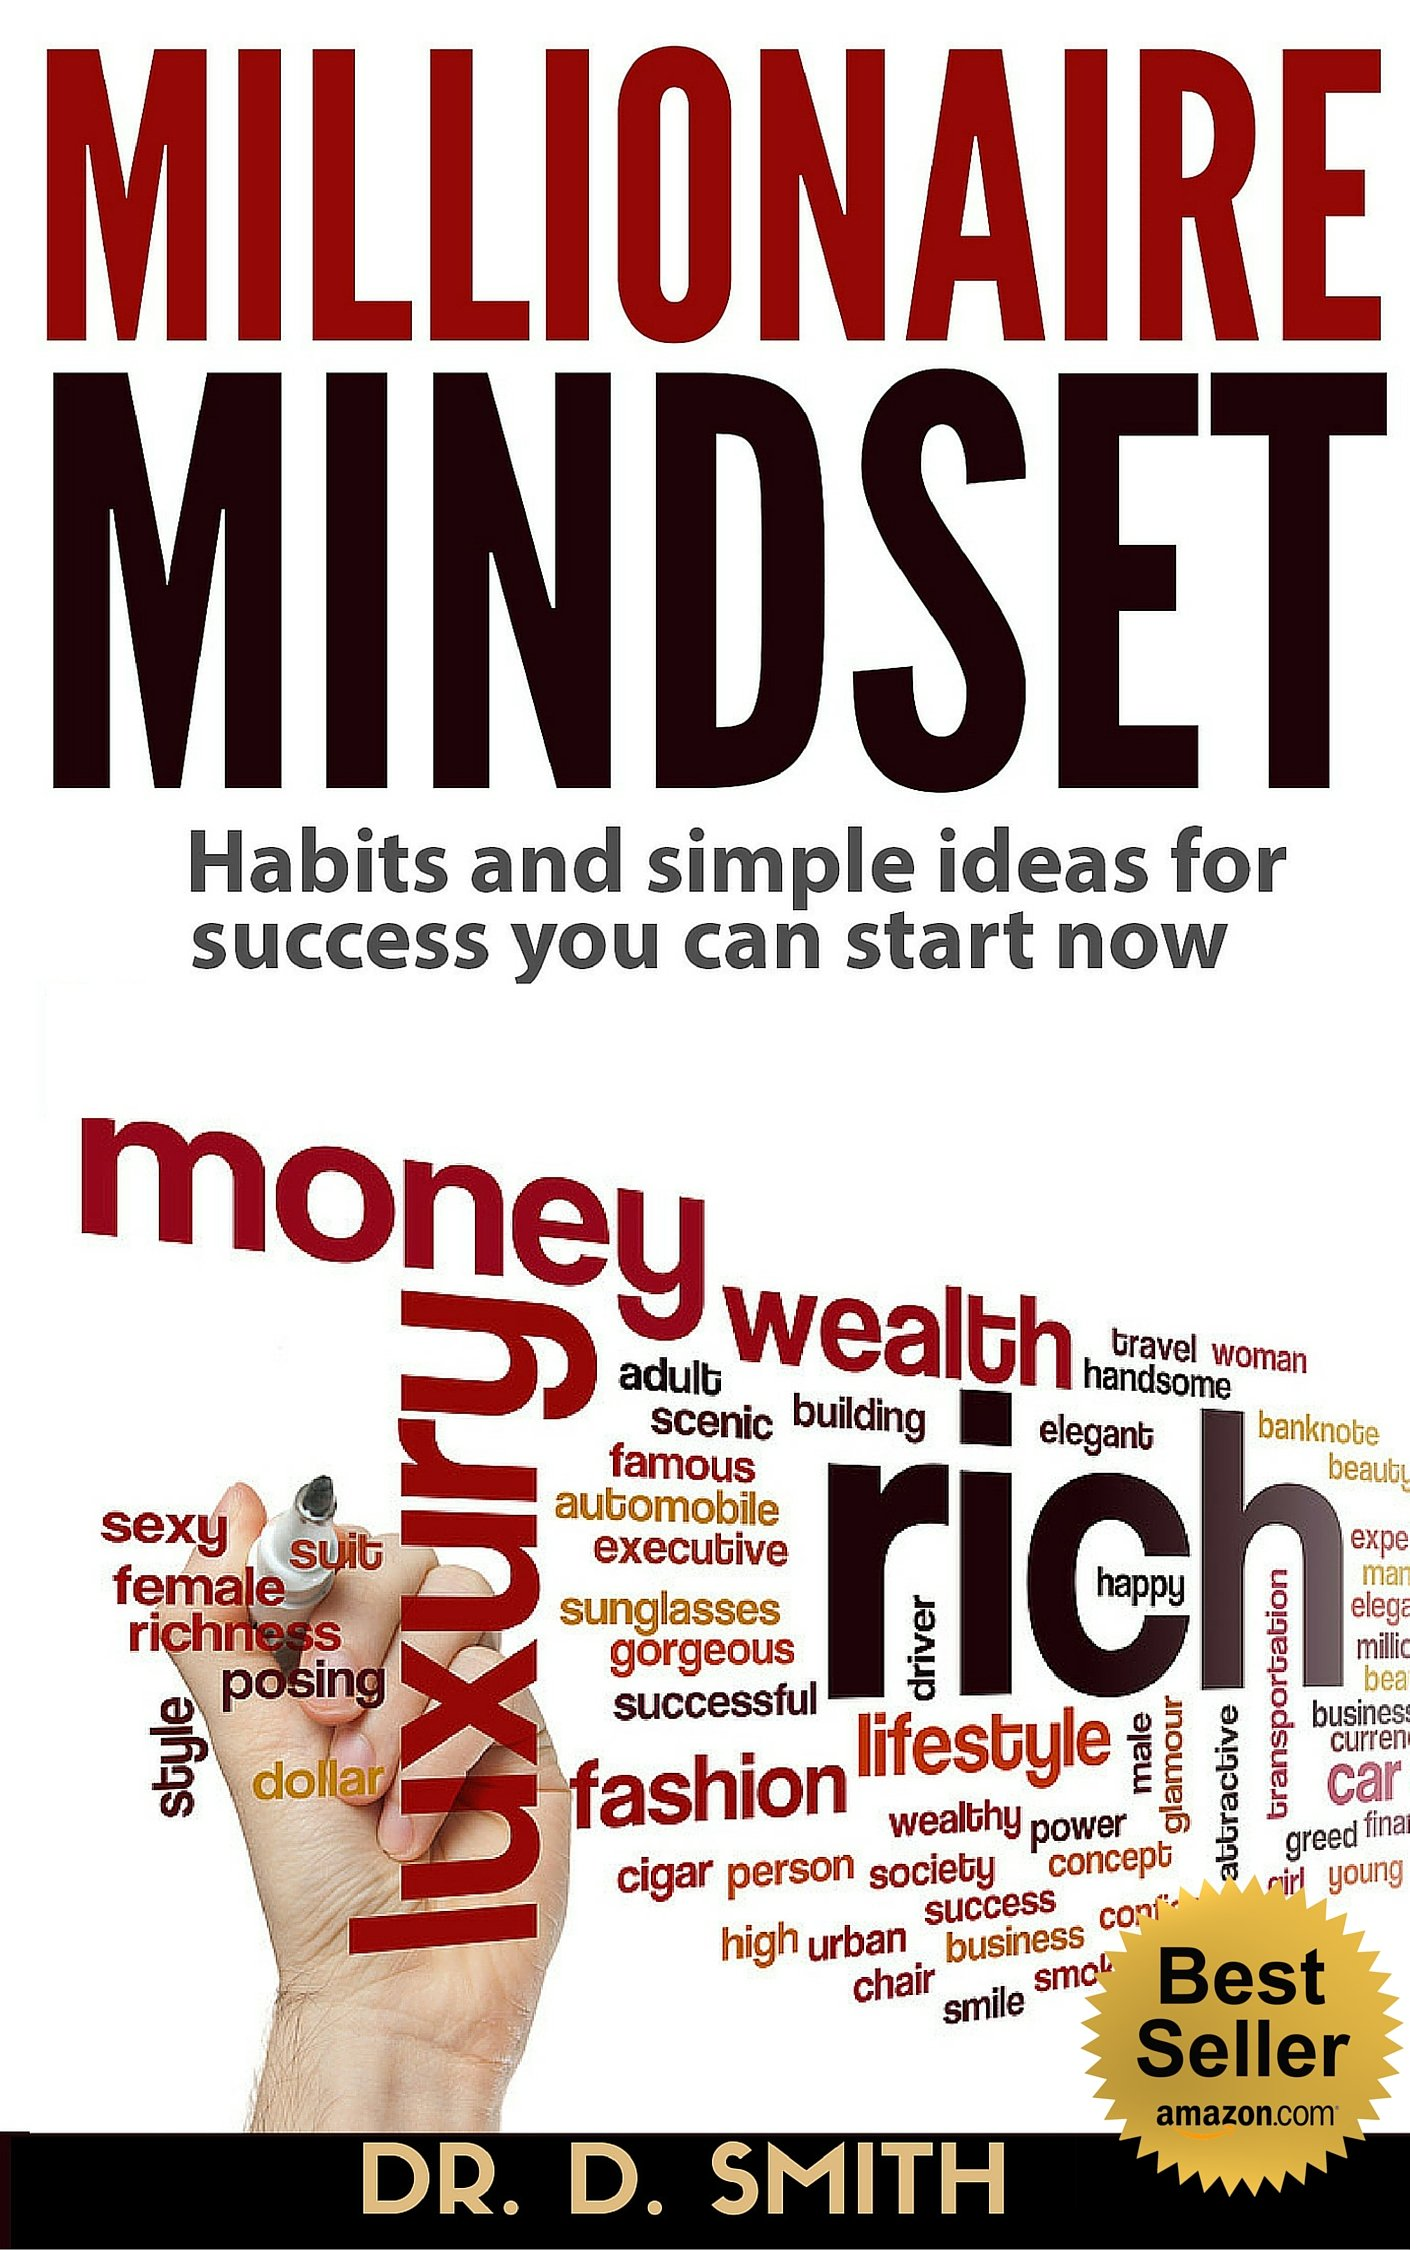 MILLIONAIRE MINDSET: HABITS AND SIMPLE IDEAS FOR SUCCESS YOU CAN START NOW: EASY PROVEN METHODS TO ROCKET YOU INTO WEALTH FASTER (REVISED)